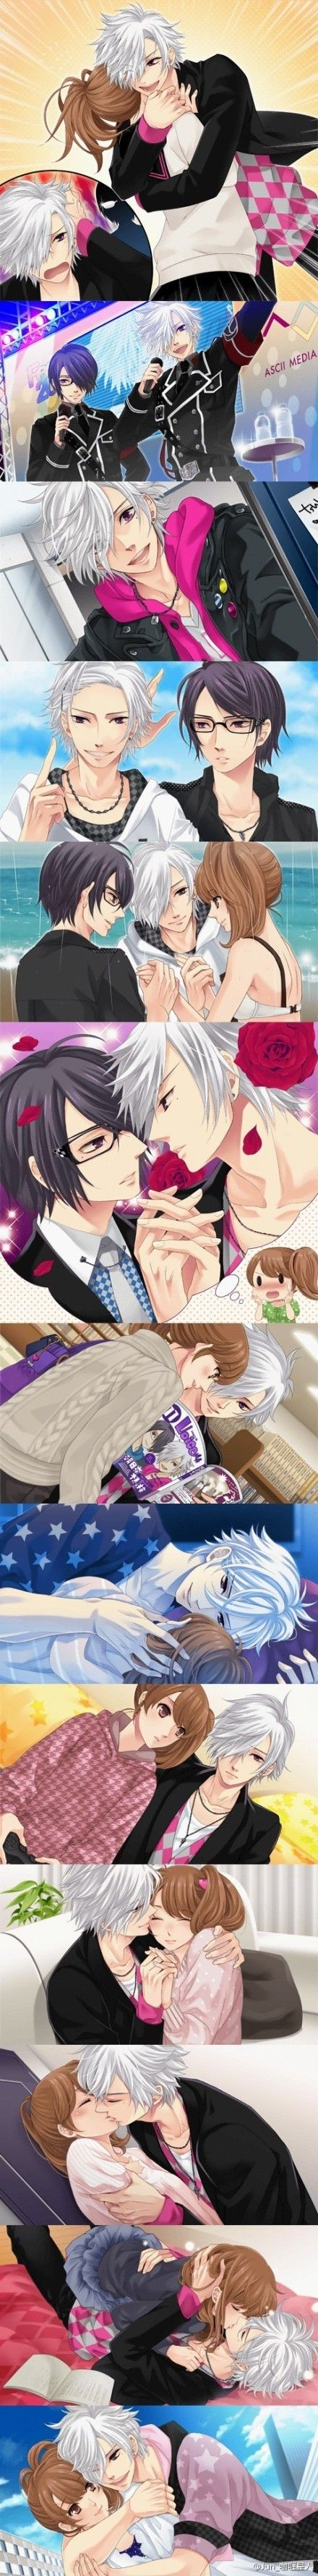 # Brothers conflict #  #anime does any one know this anime please leave a comment if you know it <3